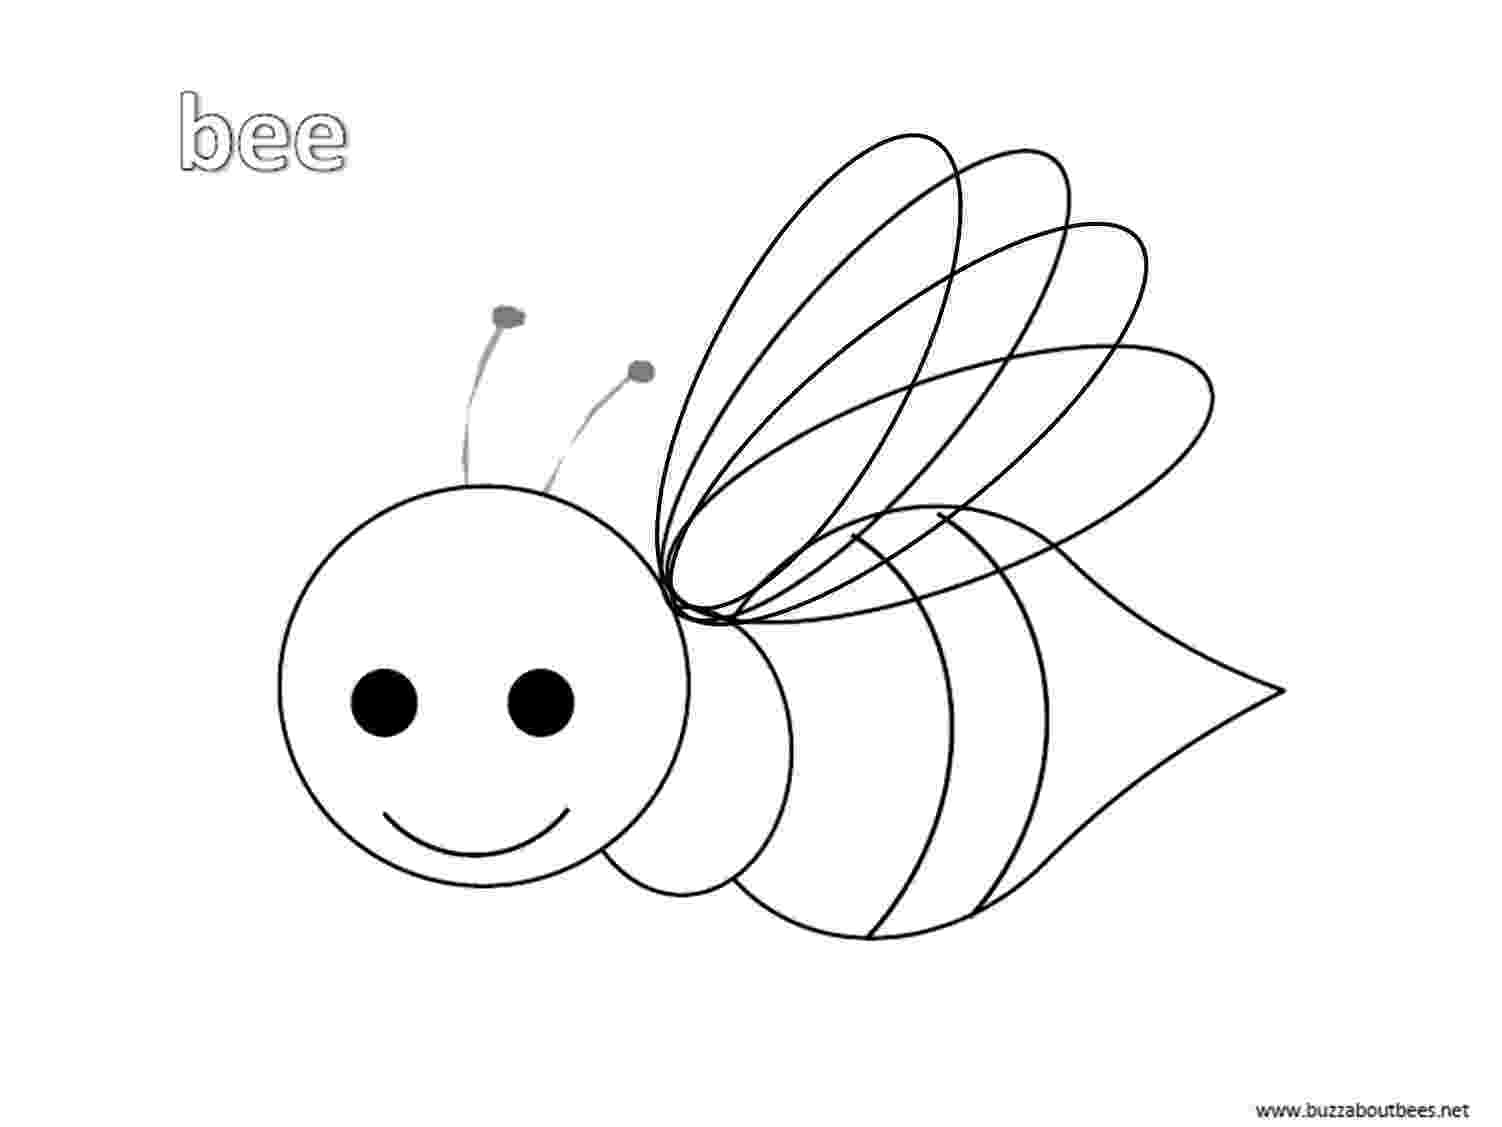 bee coloring sheet cute bee coloring pages for kids drawing coloring bee sheet